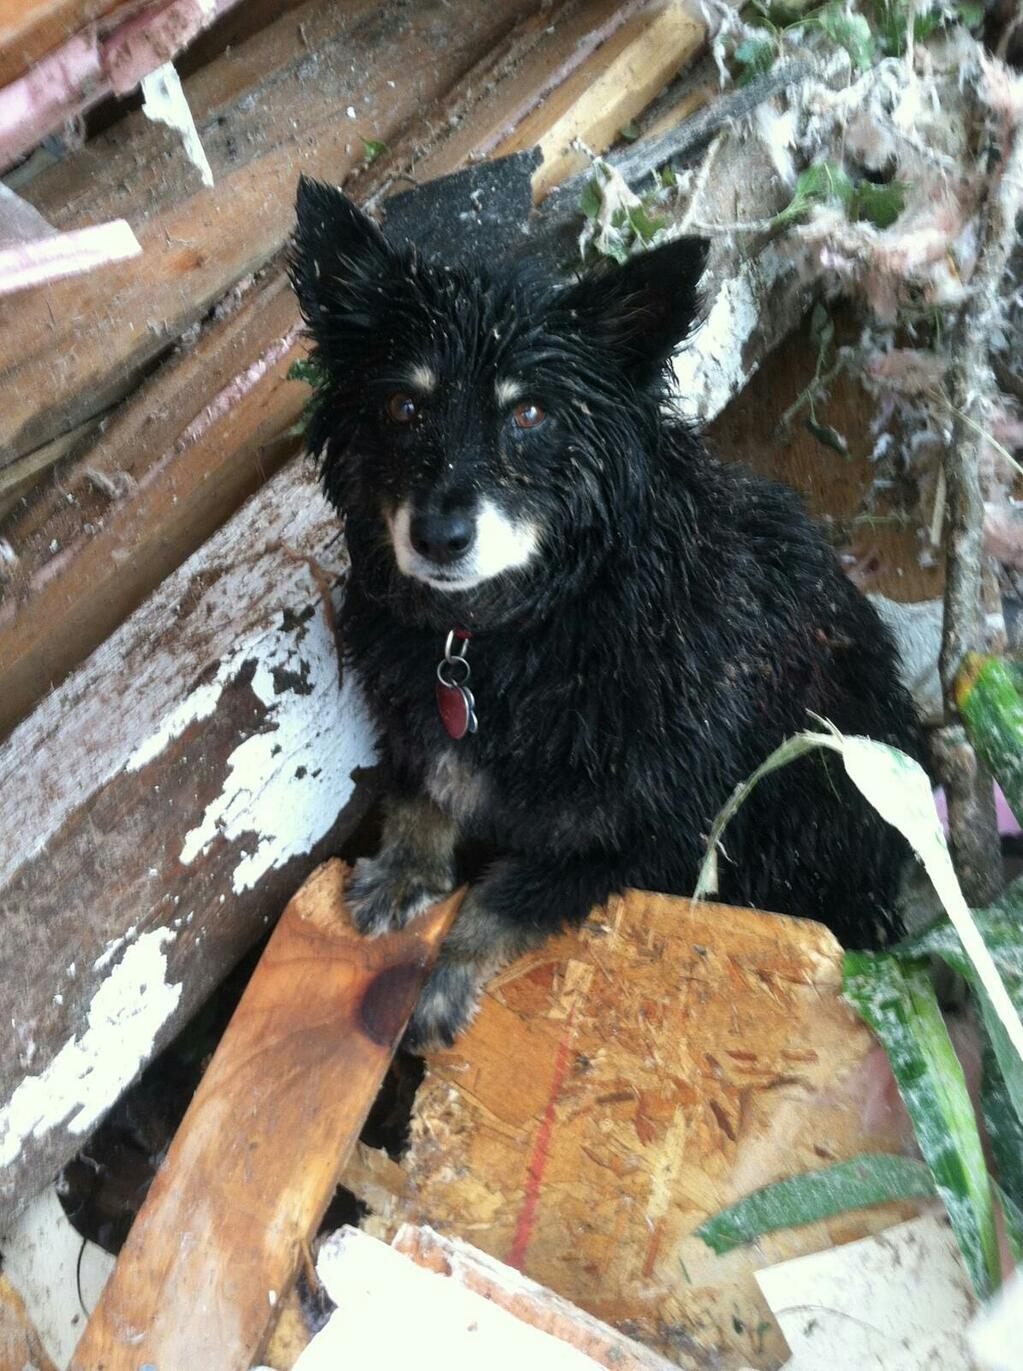 Dog survives Moore, OK tornado. Oklahoma county Sheriff's tweet: Scared, but this little pup survived.